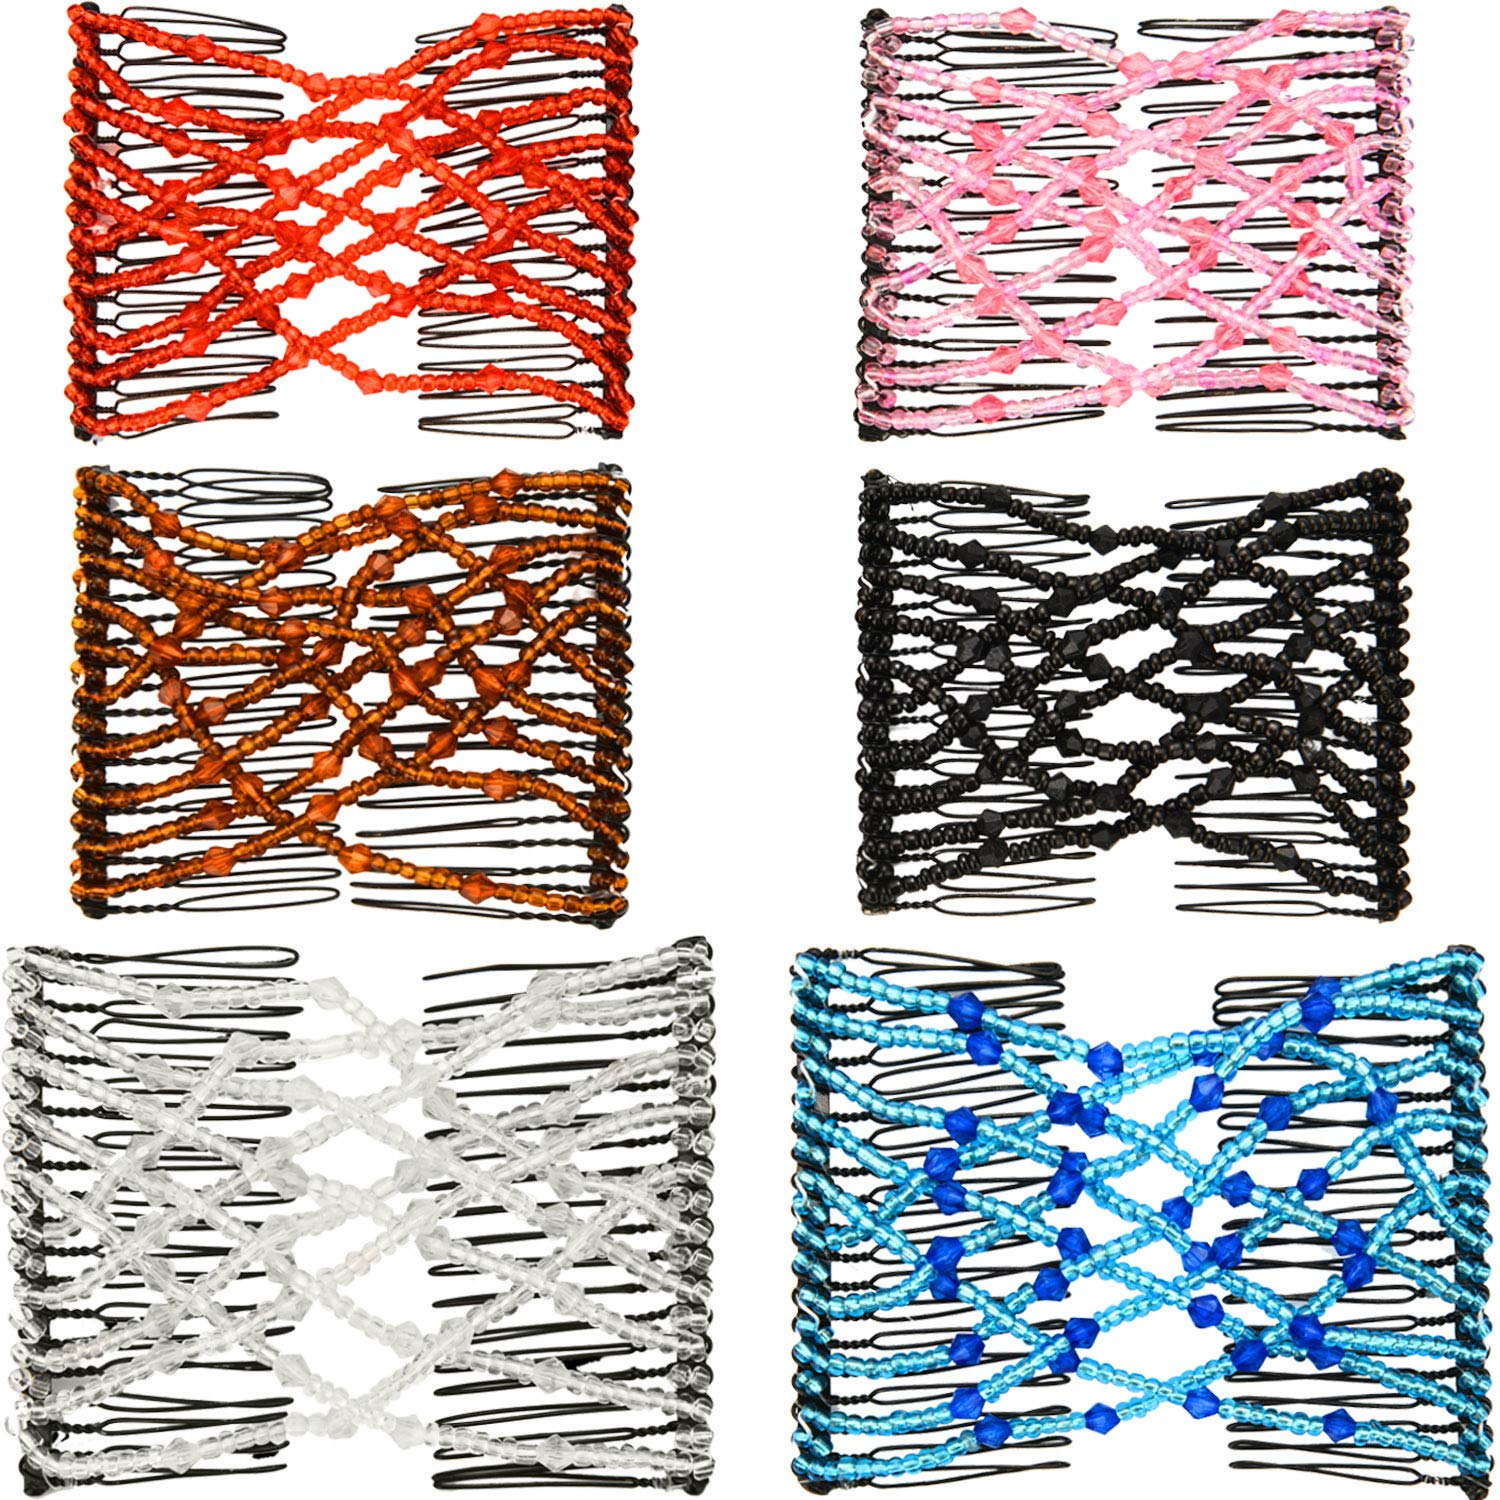 Details about  /Beads Elasticity Double Hair Comb Clip Stretchy Combs WJ Clips Women B4U6